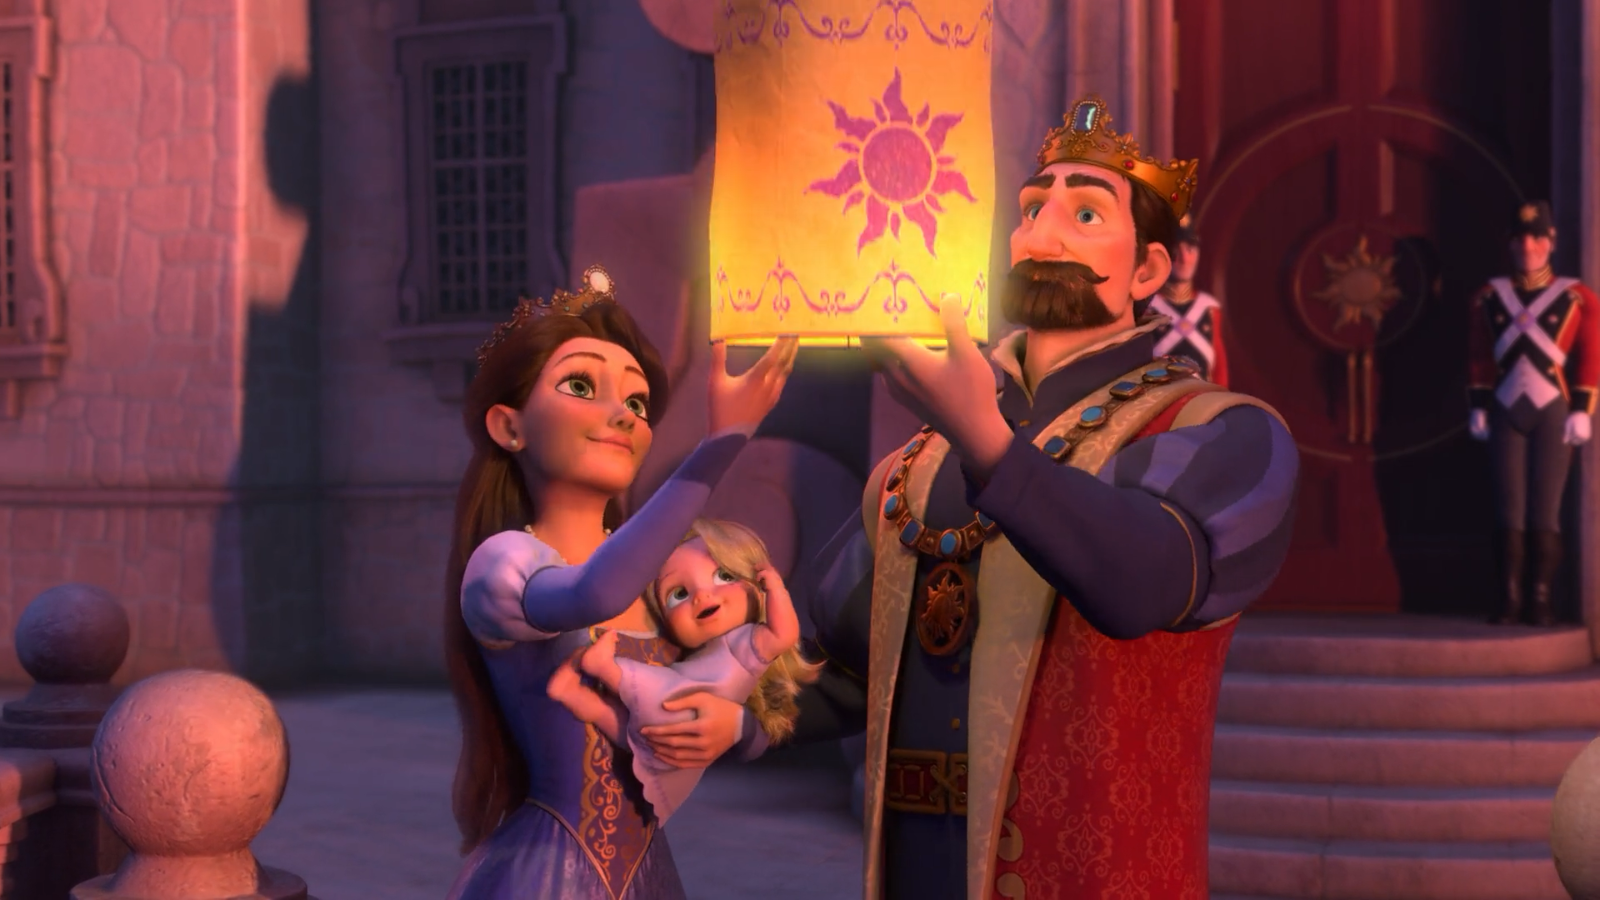 Tangled MovieReview